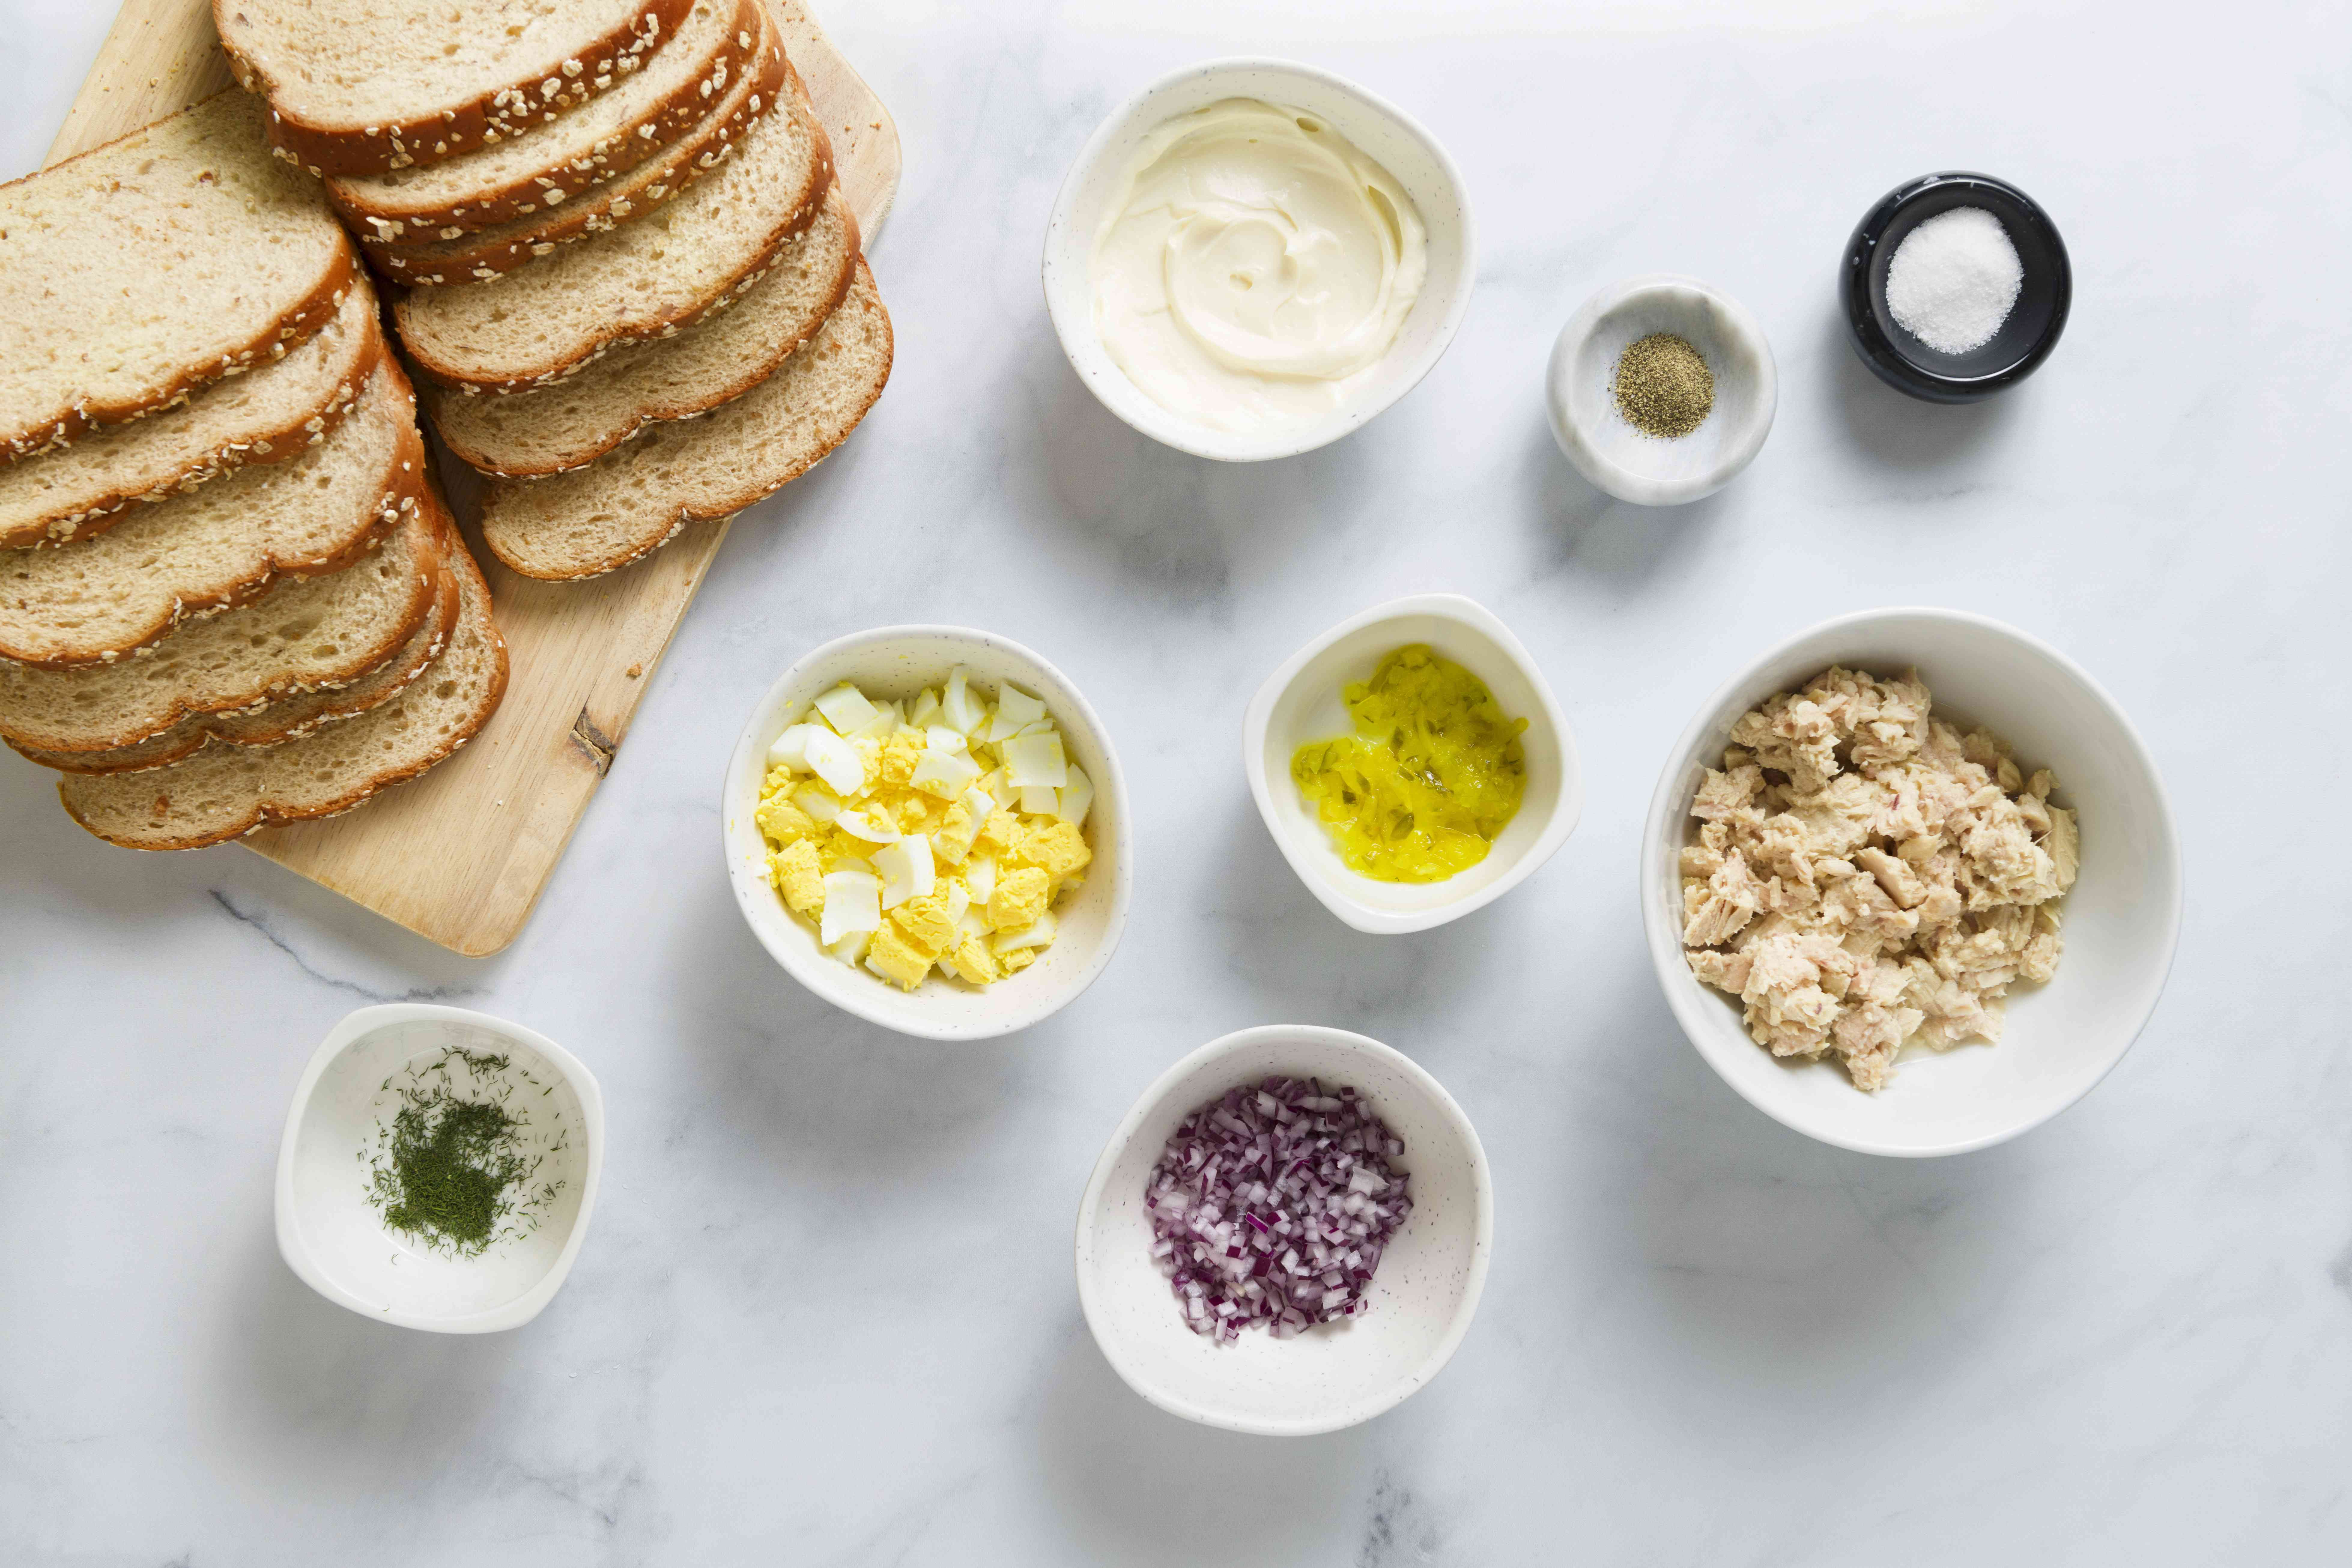 Eggs and dill tuna salad ingredients